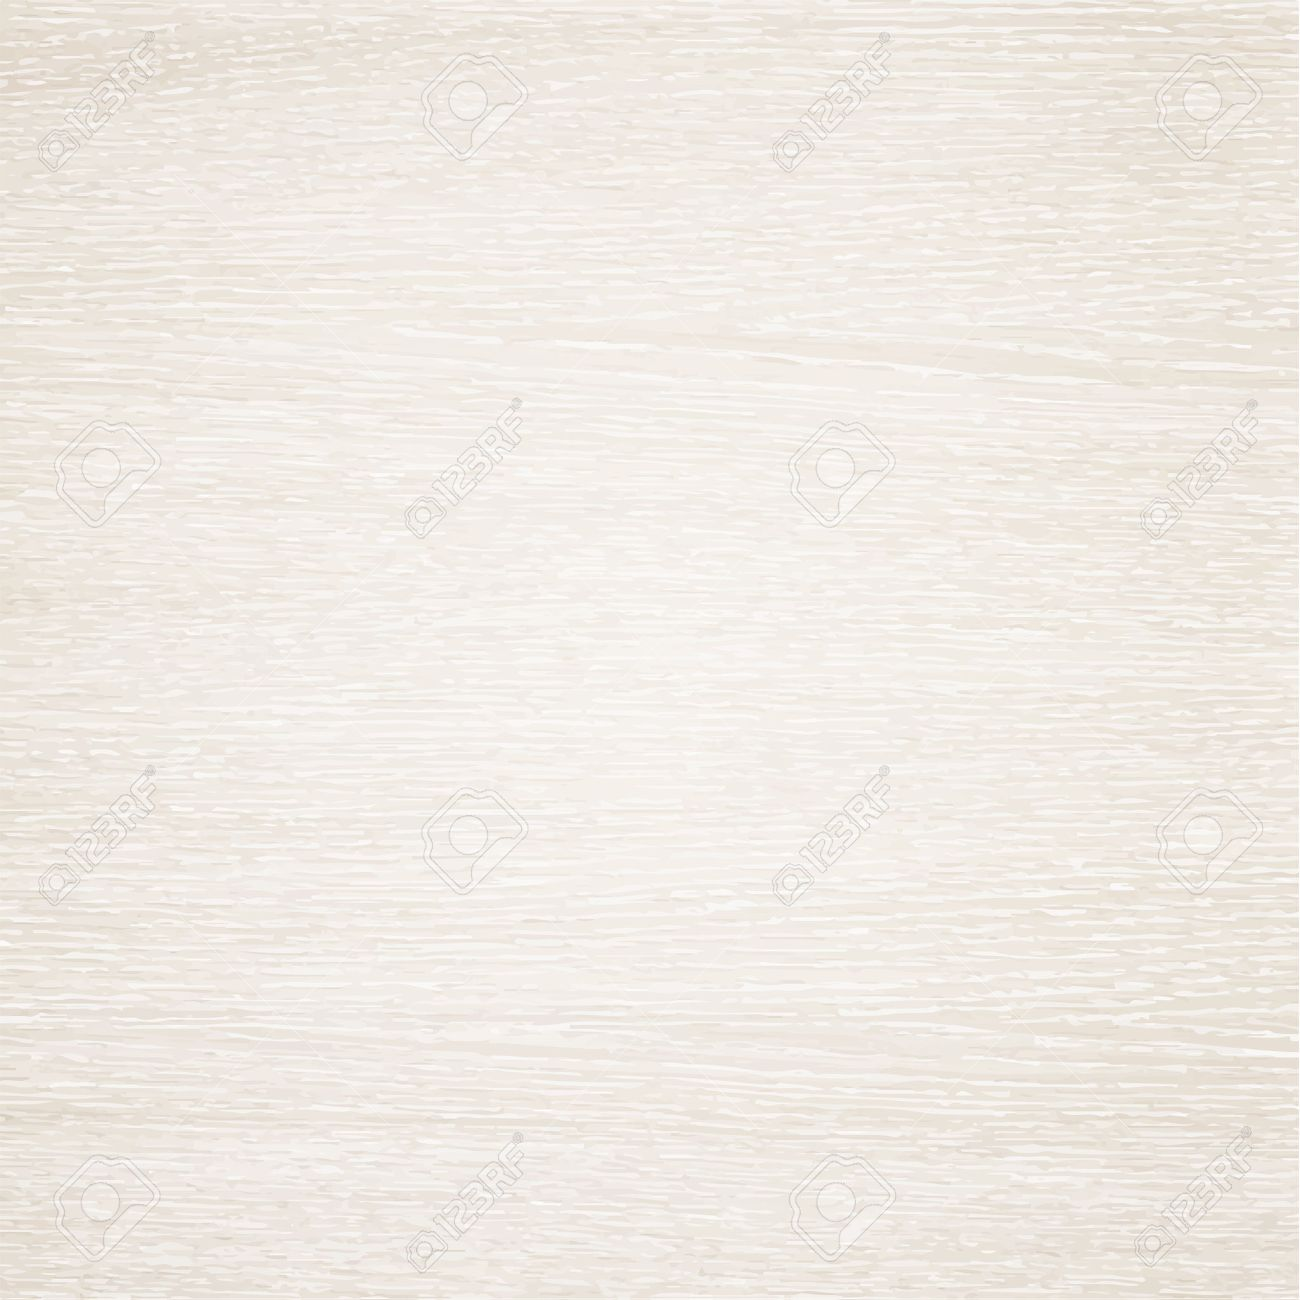 Attrayant Light Wood Board Or Wooden Table Deck. Wooden Texture Stock Vector    40645936